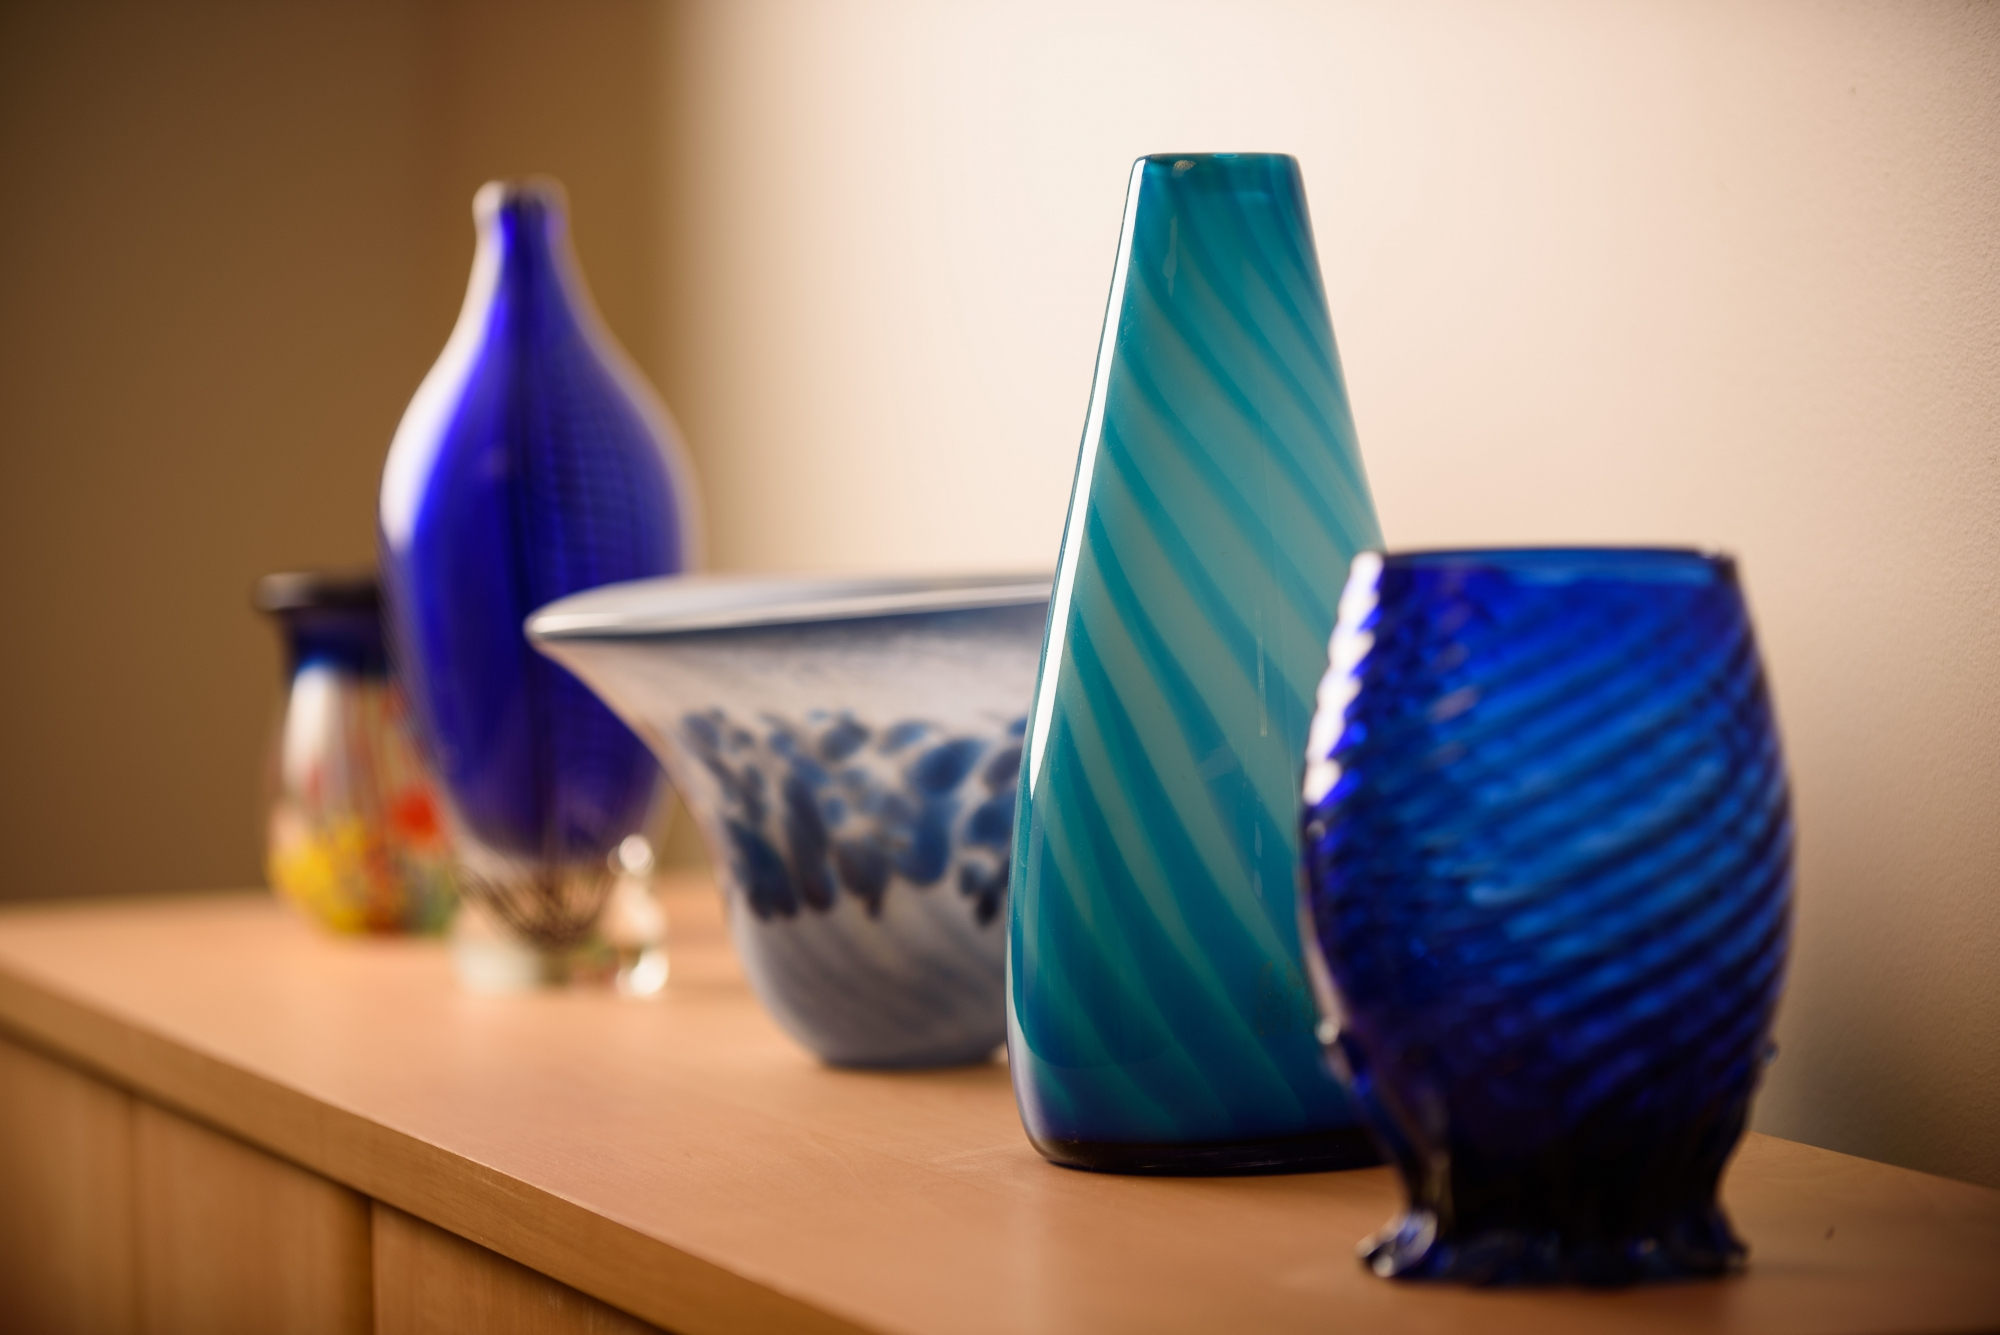 Decorative blue glass vases